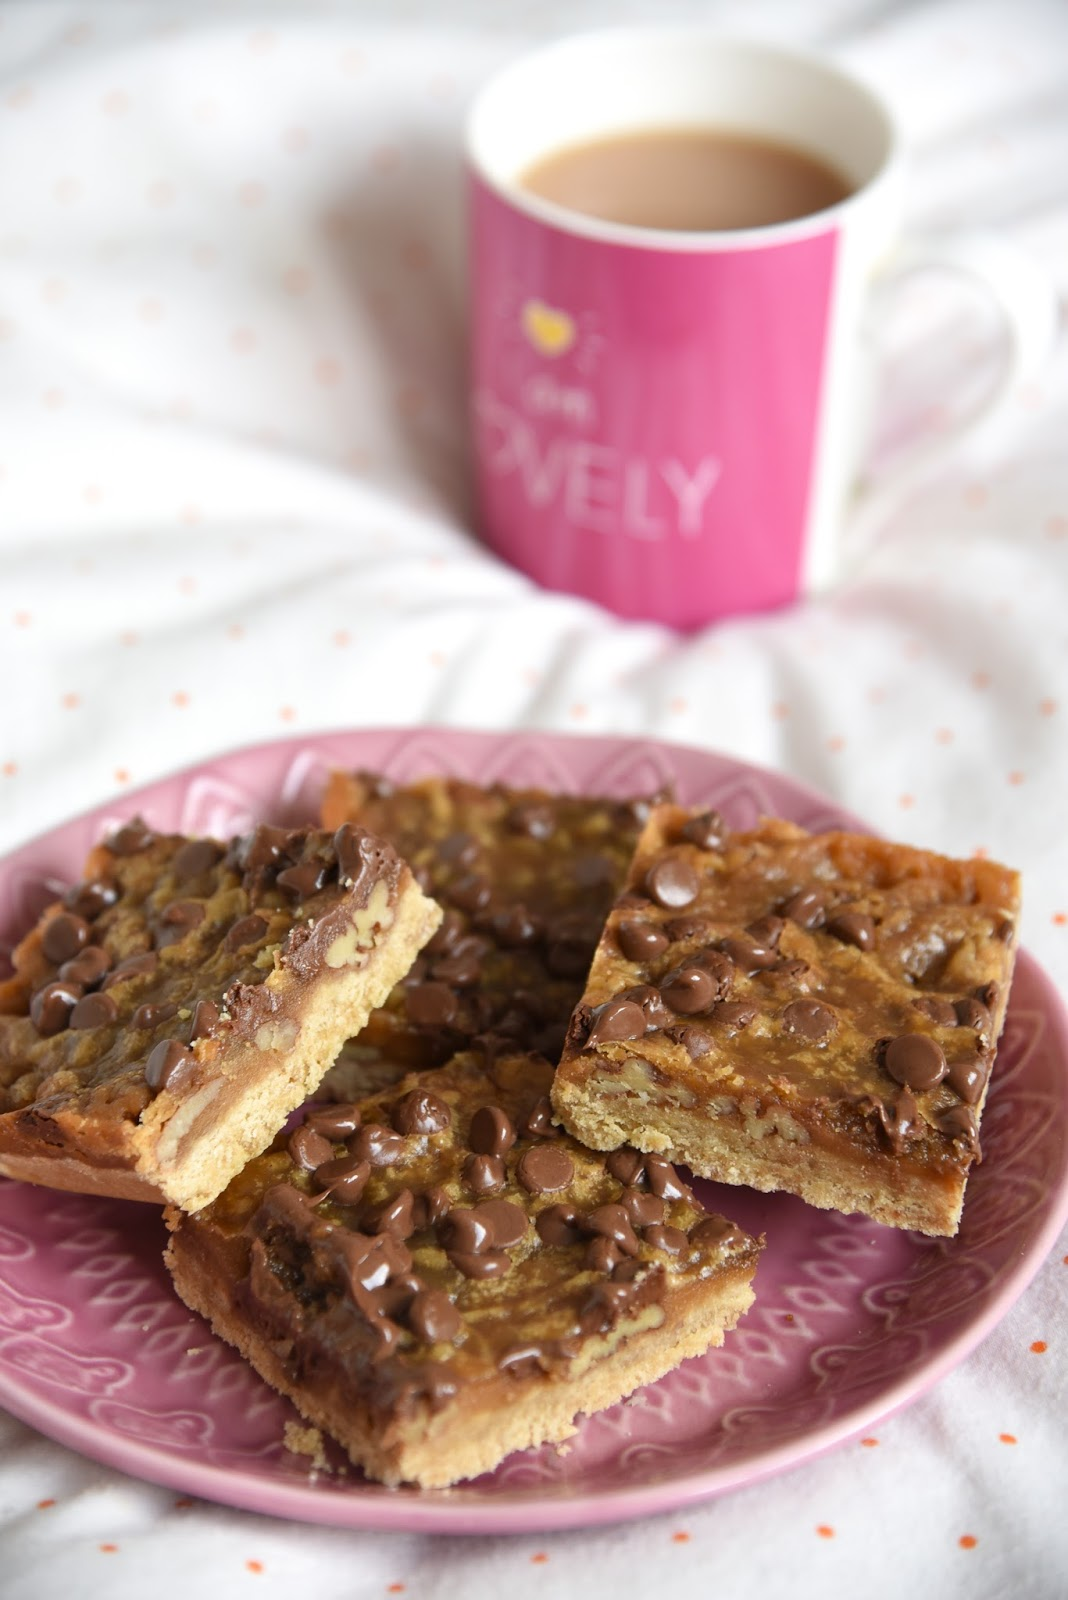 Toffee Turtle Bars Recipe